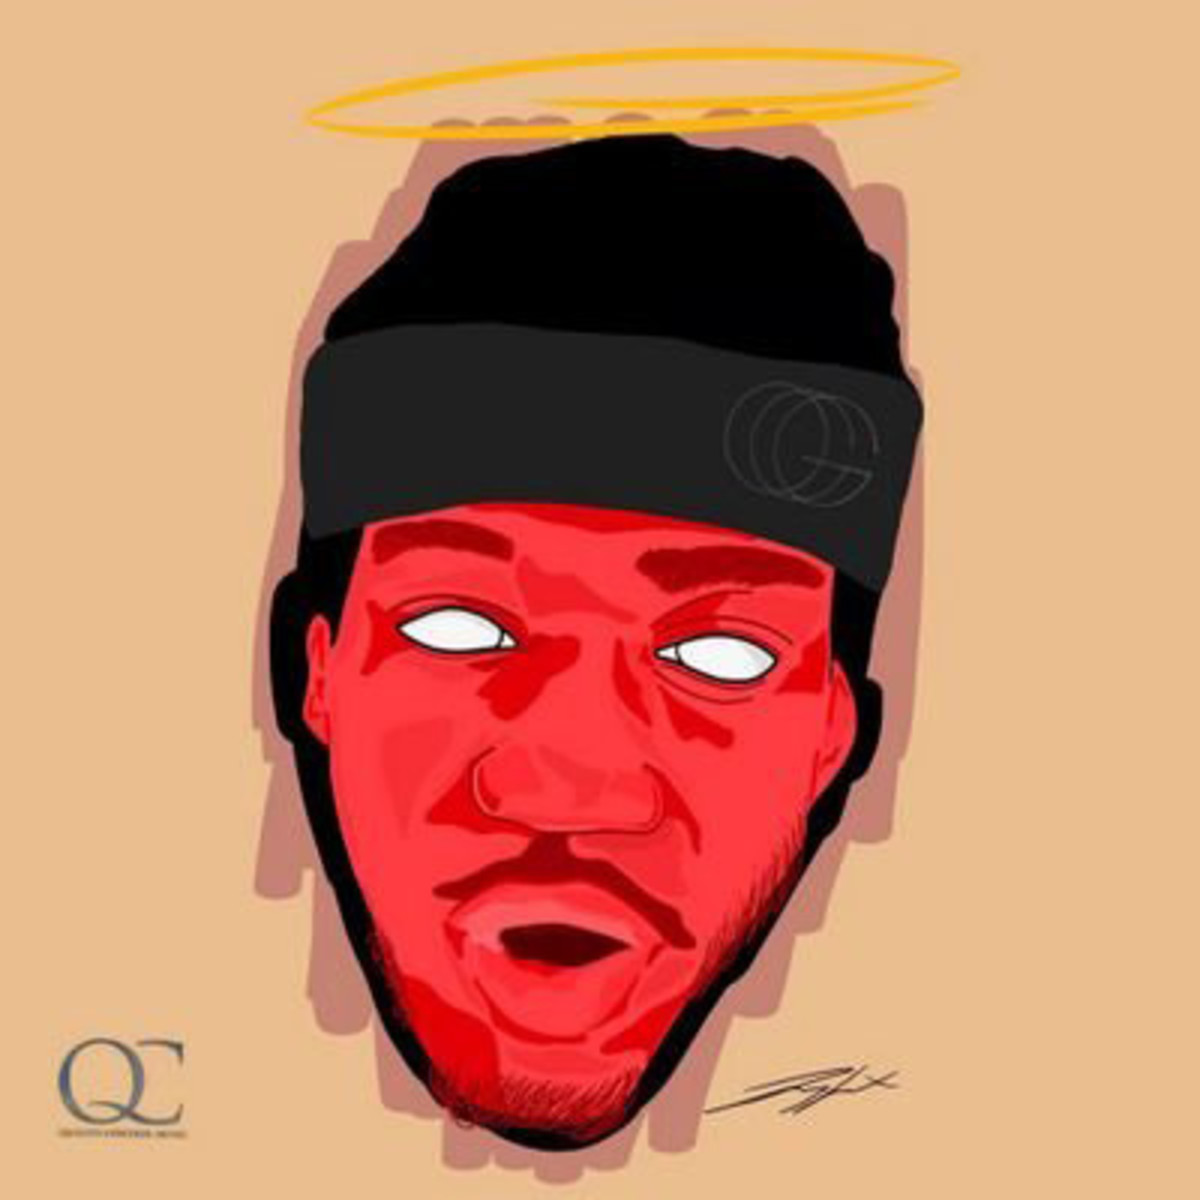 og-maco-fan-art-new.jpg